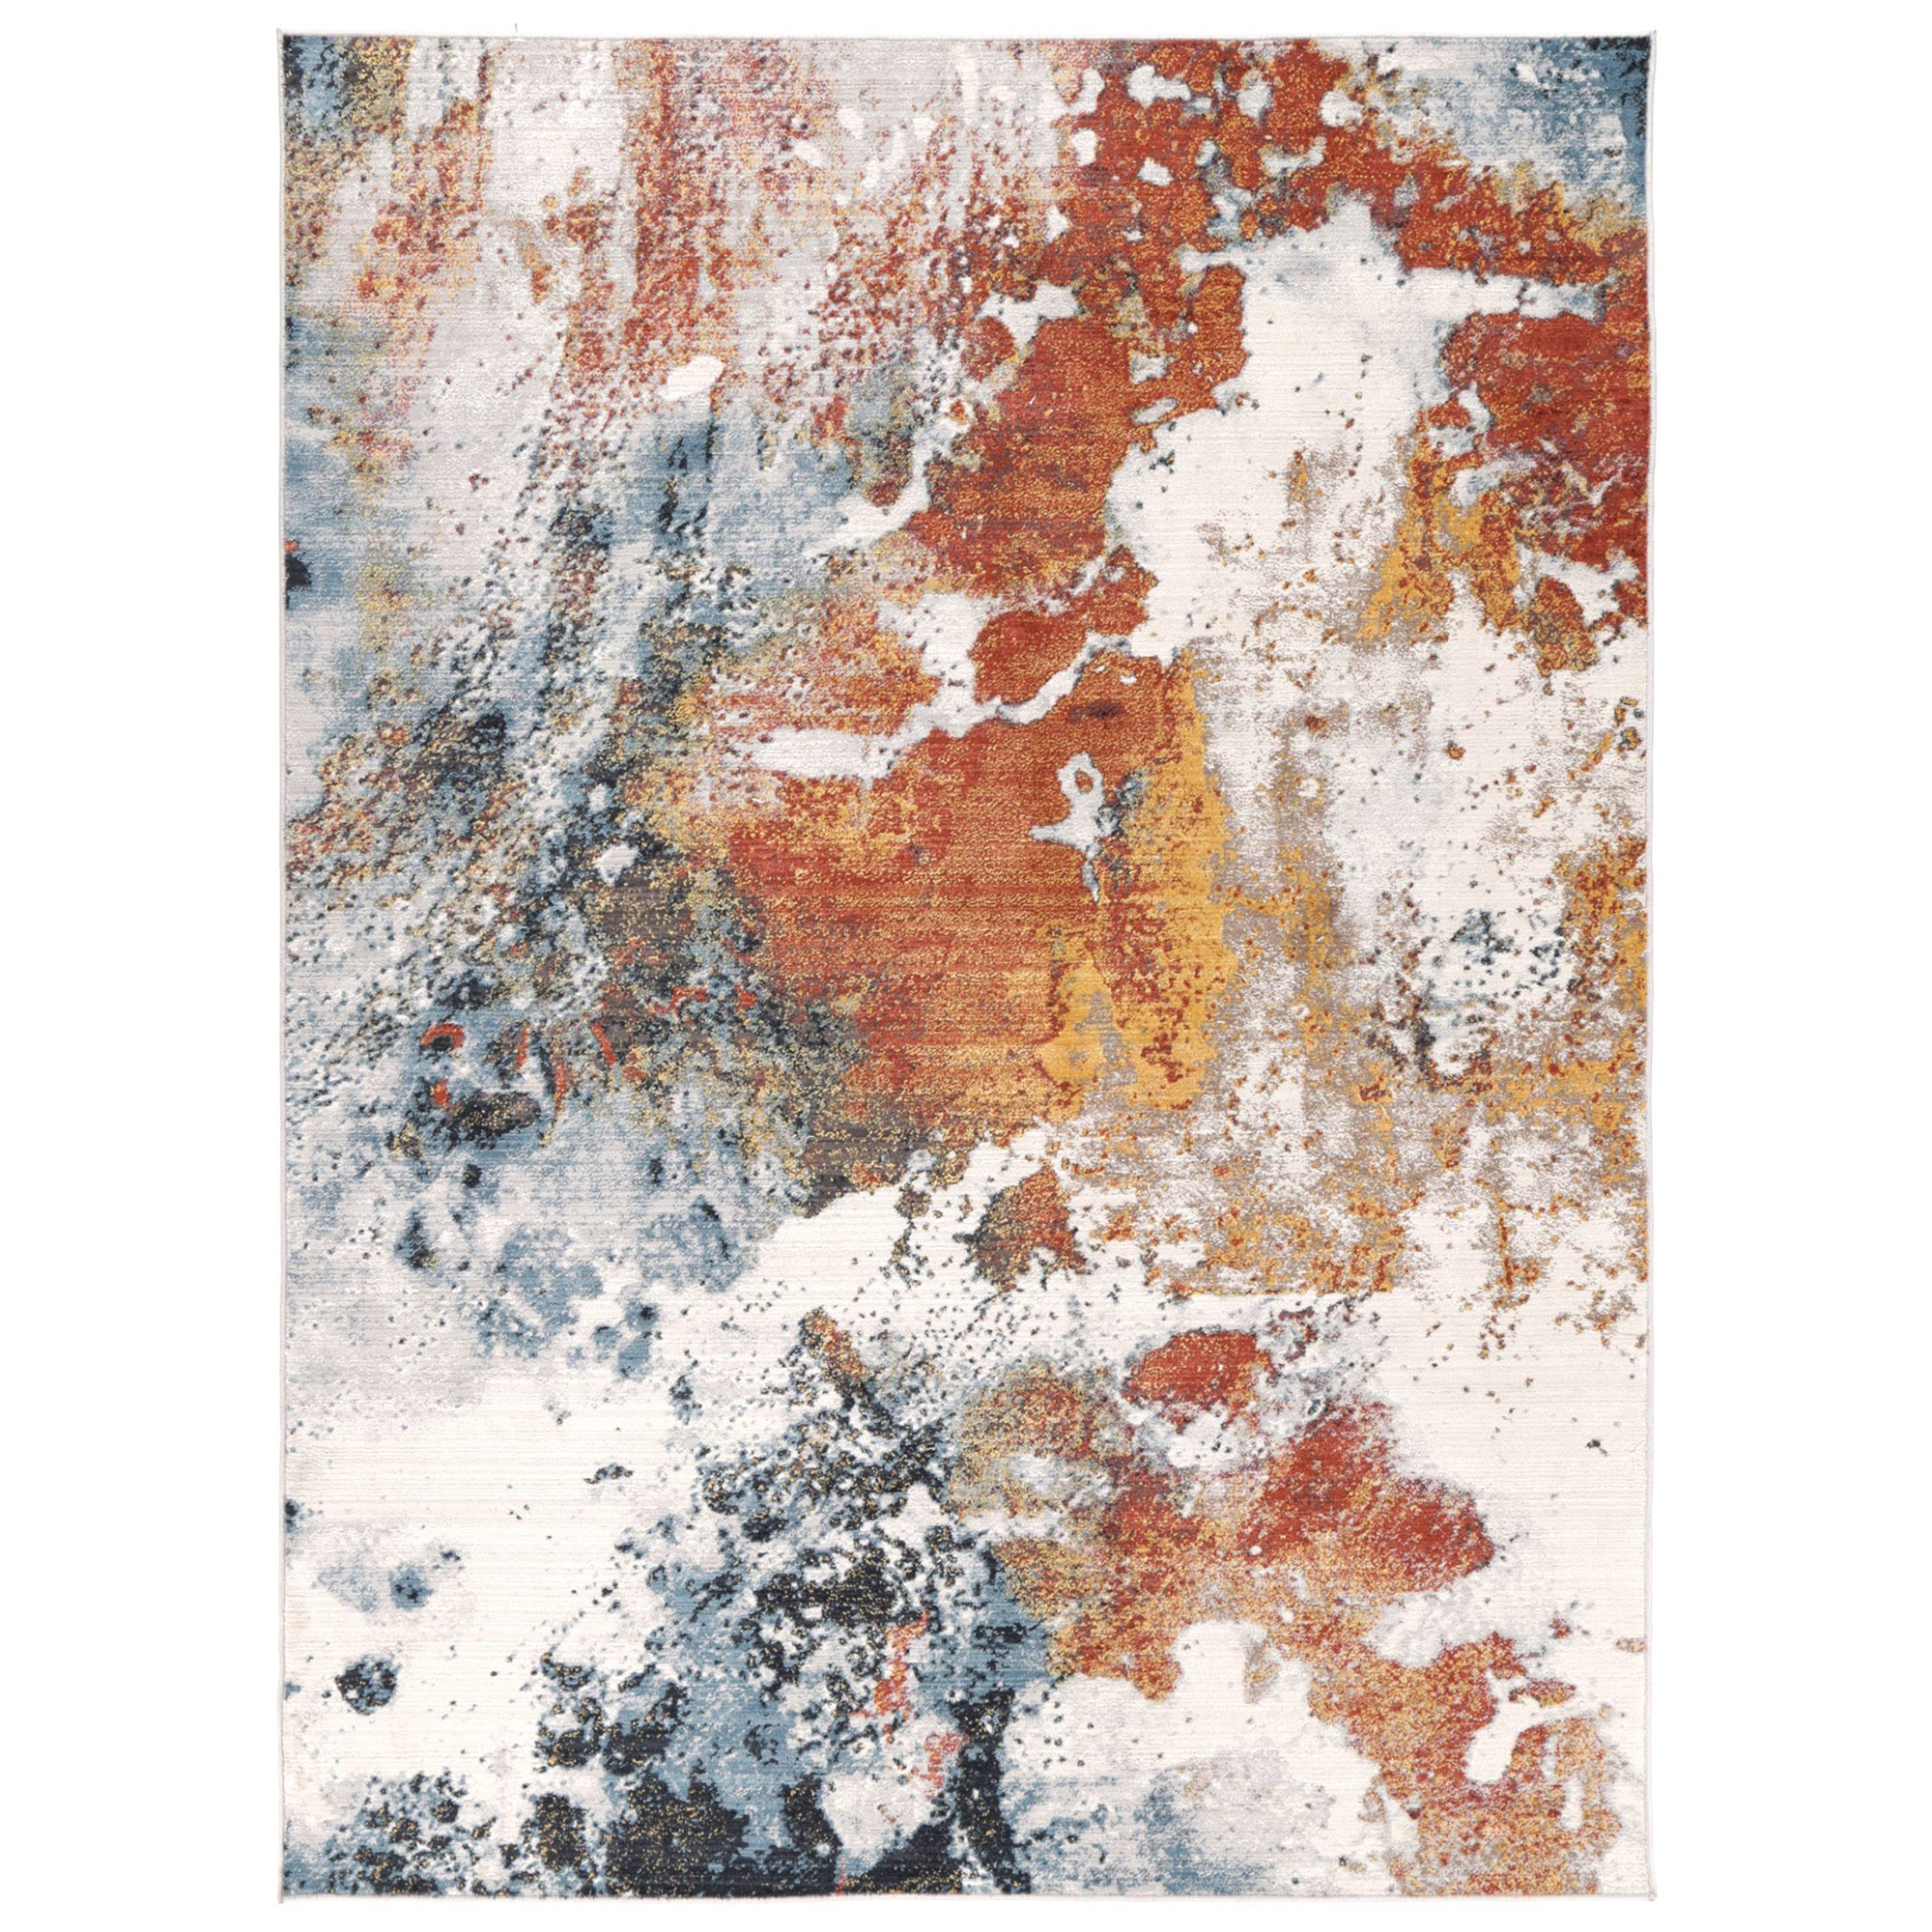 Havana No.04 Abstract Modern Rug, 380x280cm